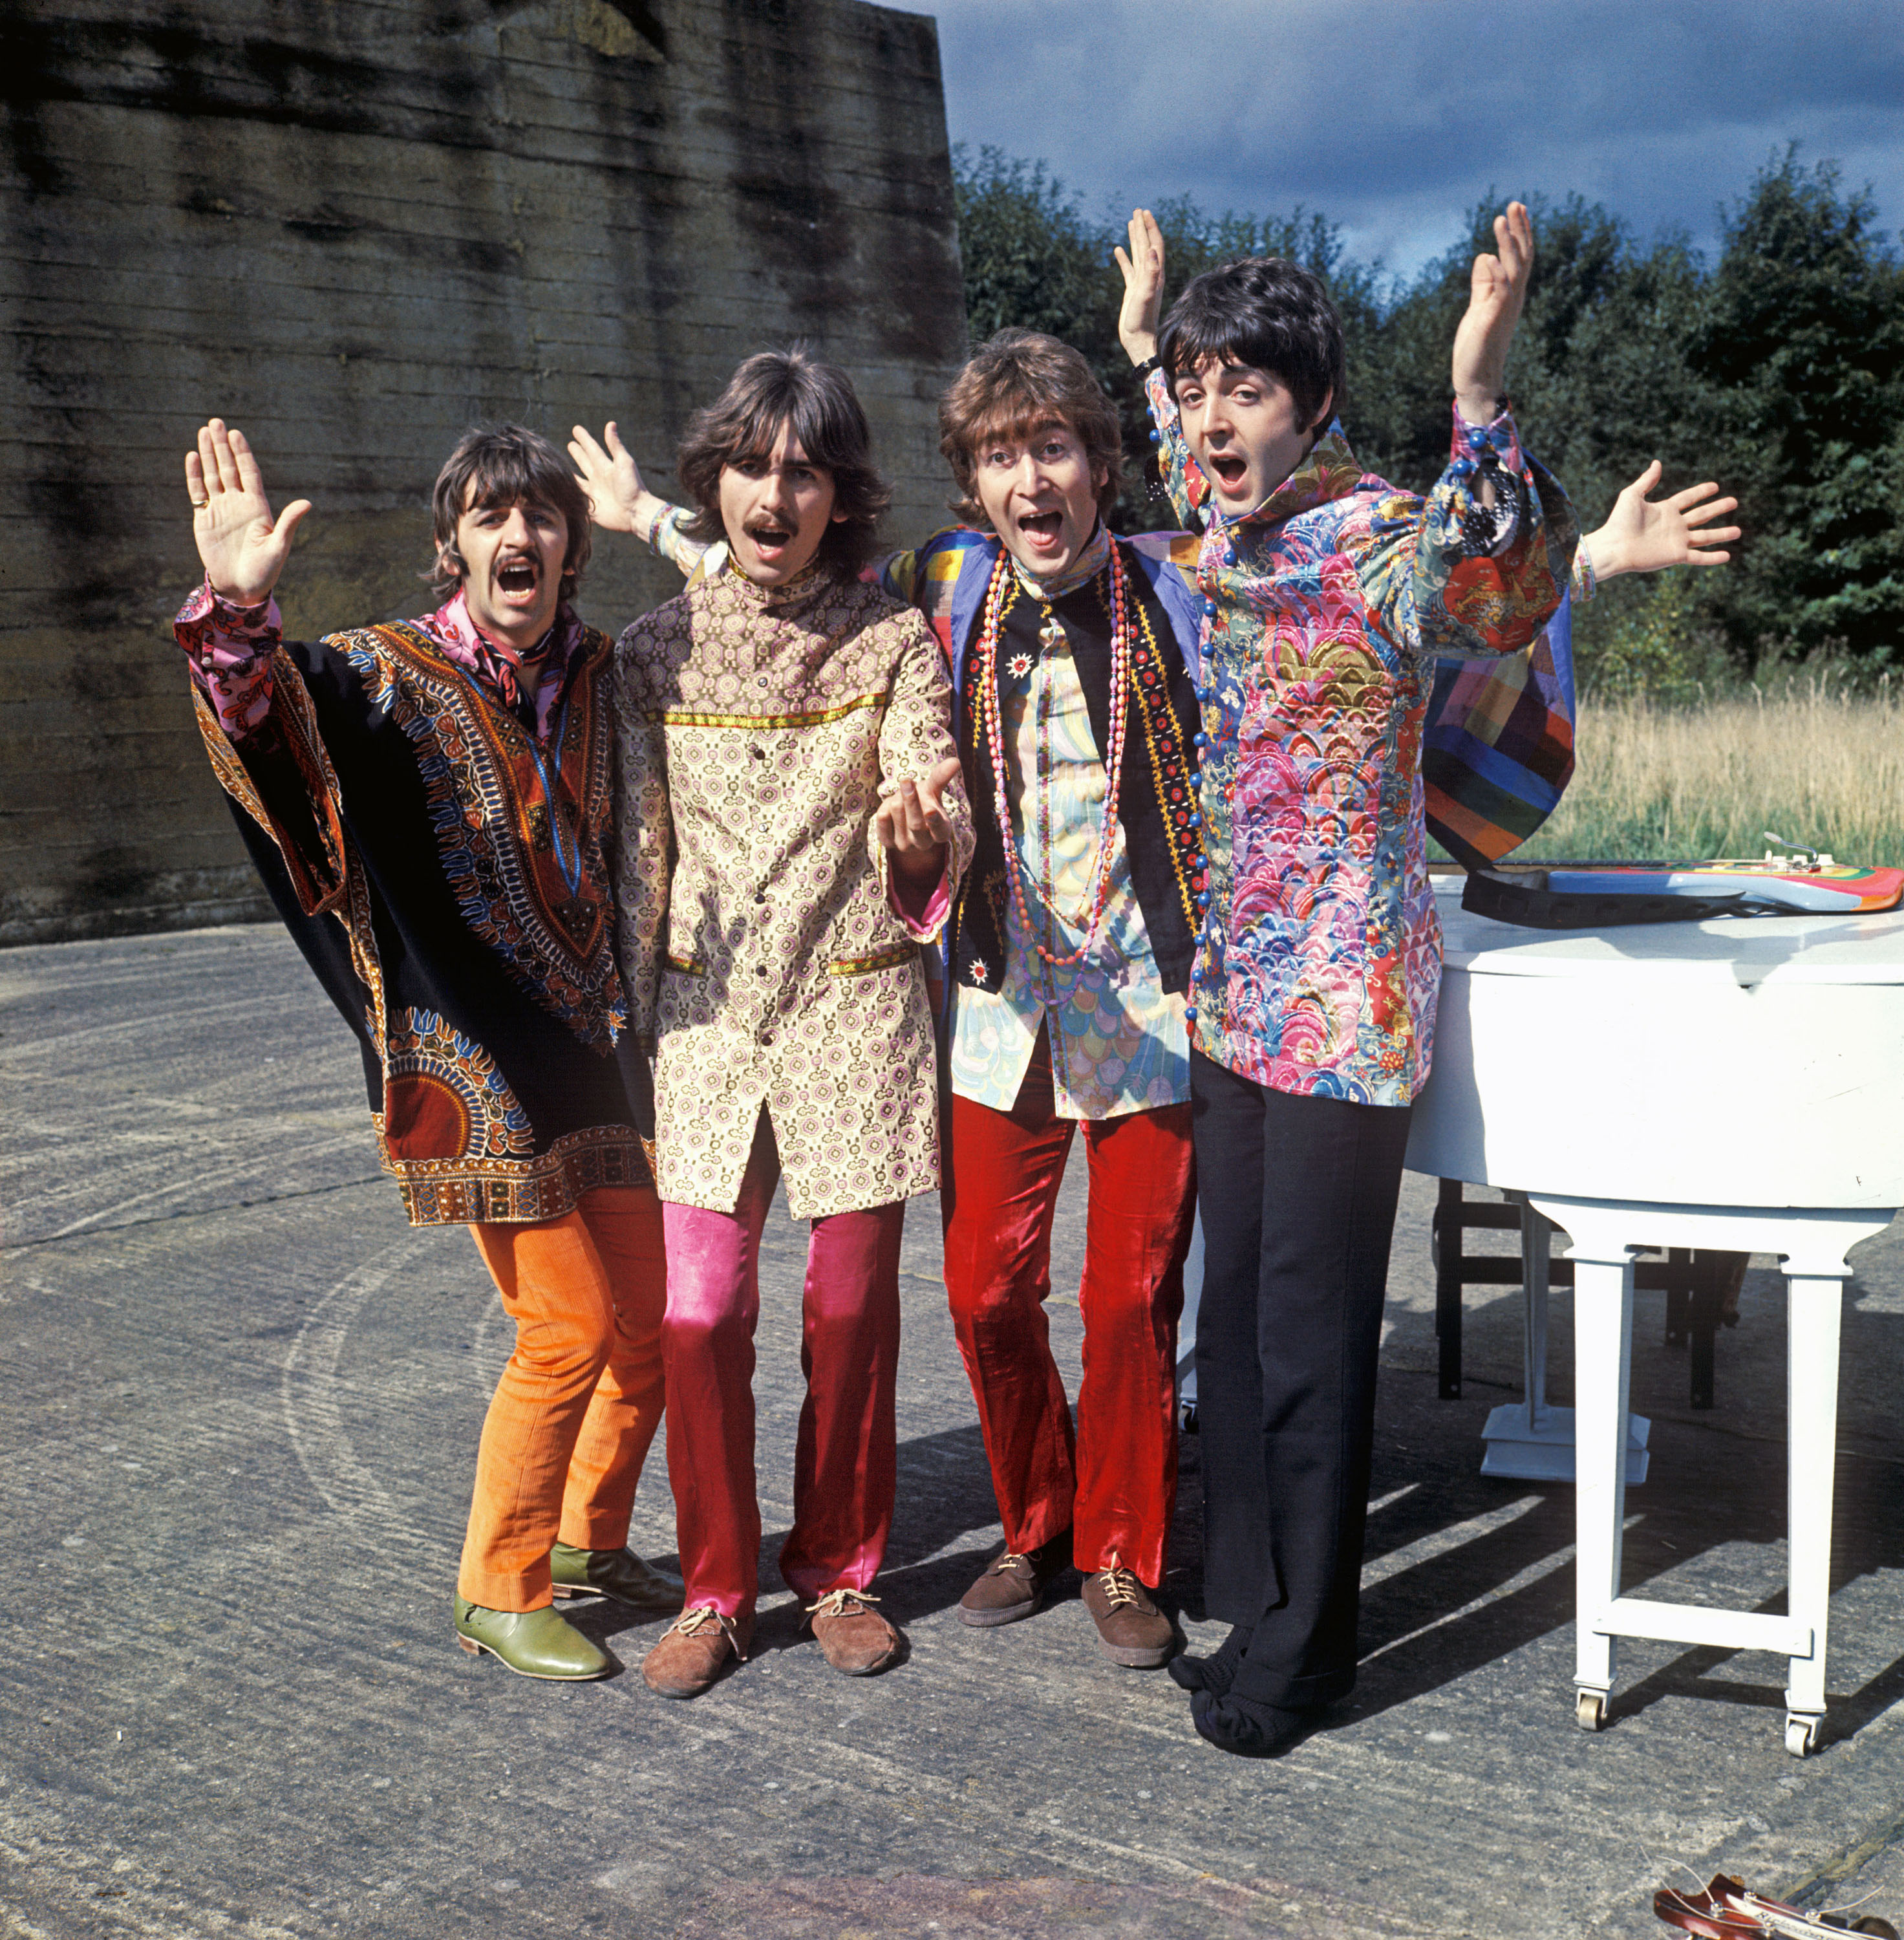 Great Performances - The Beatles' Magical Mystery Tour - Pressroom